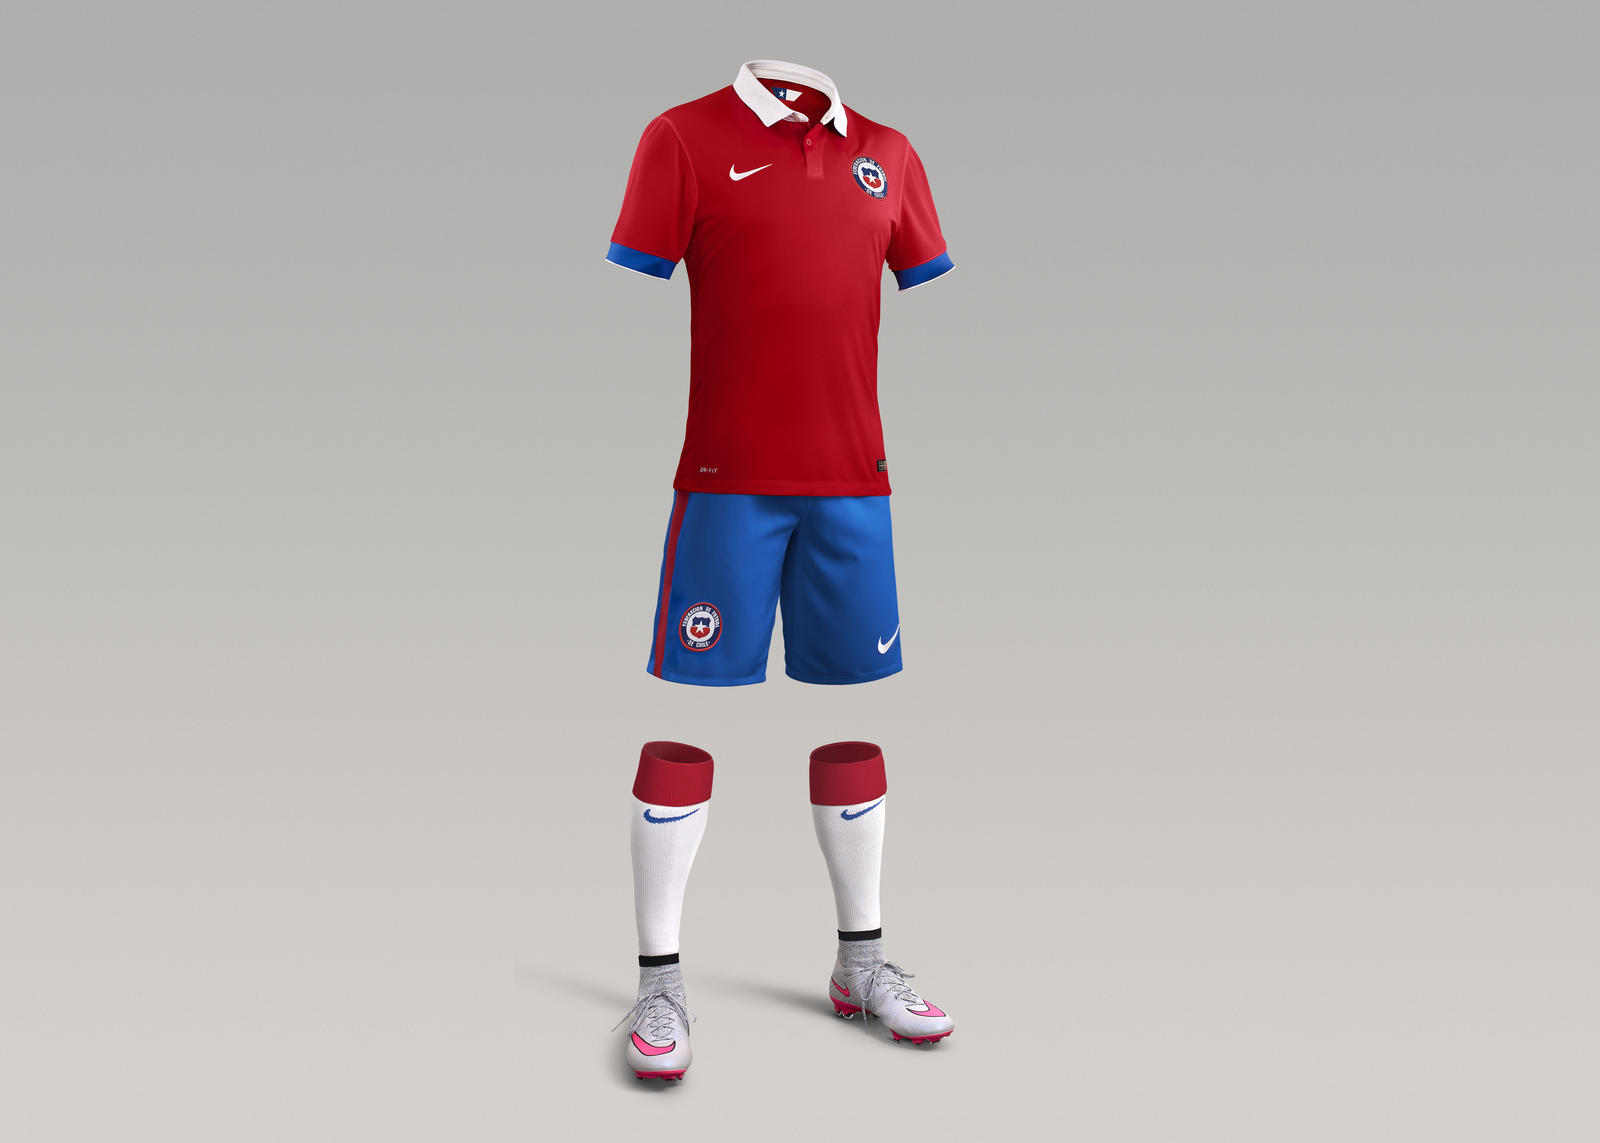 1cf981eaeef7 Nike Partners with the Chile Football Federation - Nike News